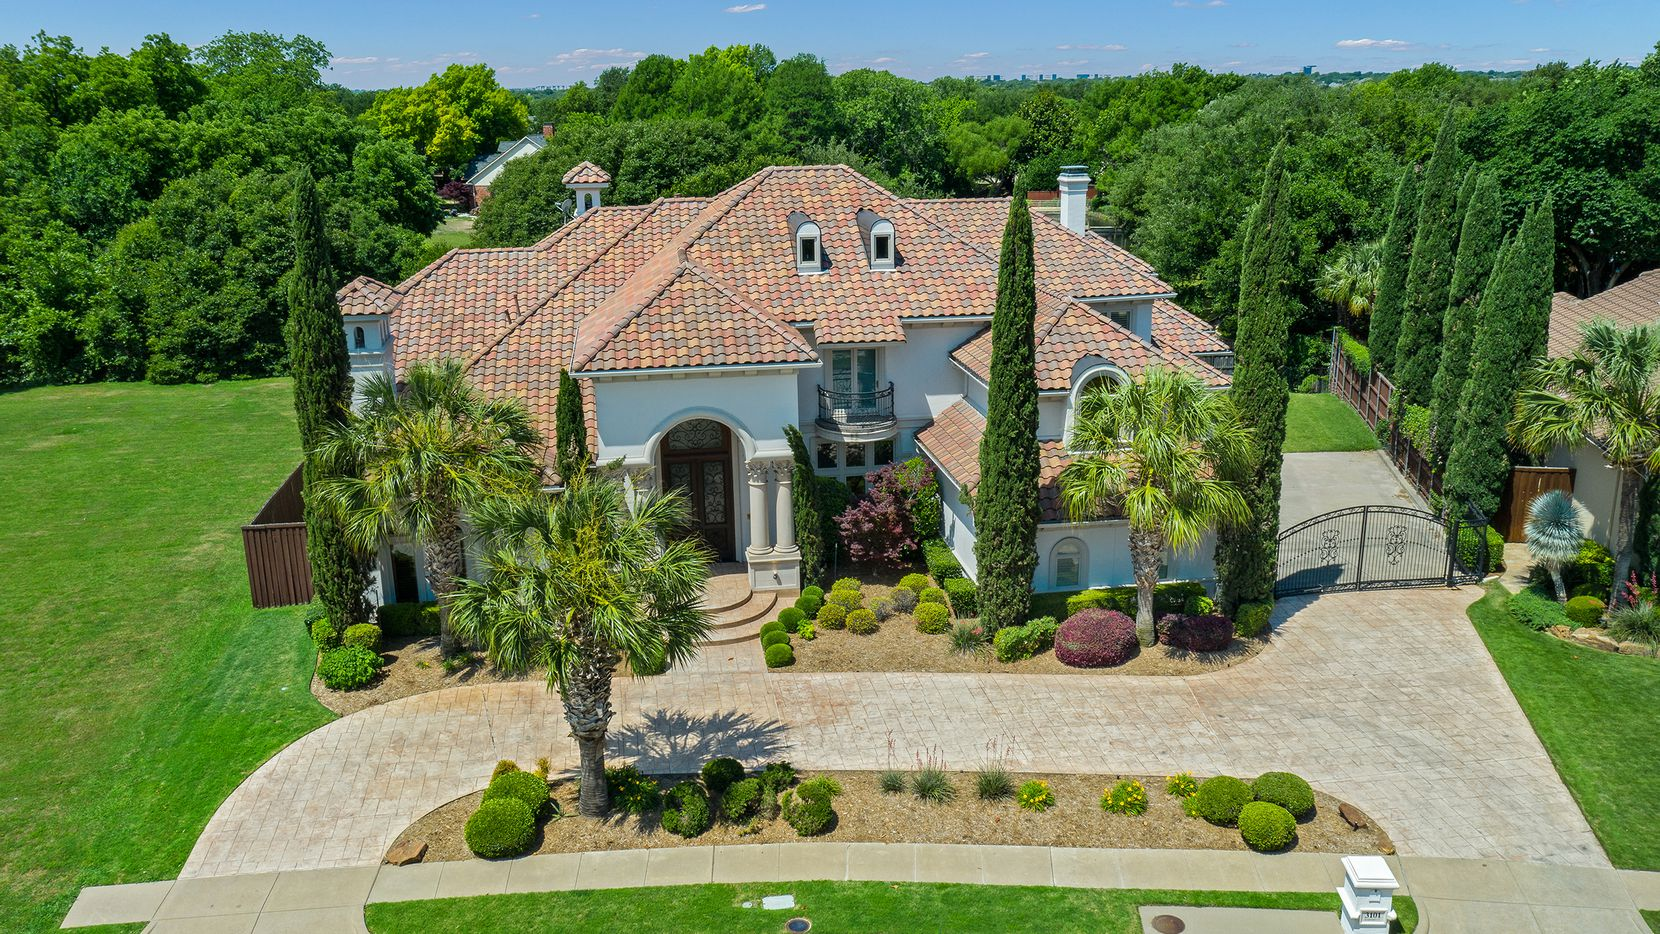 Listed for $1,750,000, the residence at 3101 Harvard Court in Plano will be held open from noon to 3 p.m. on Nov. 14.